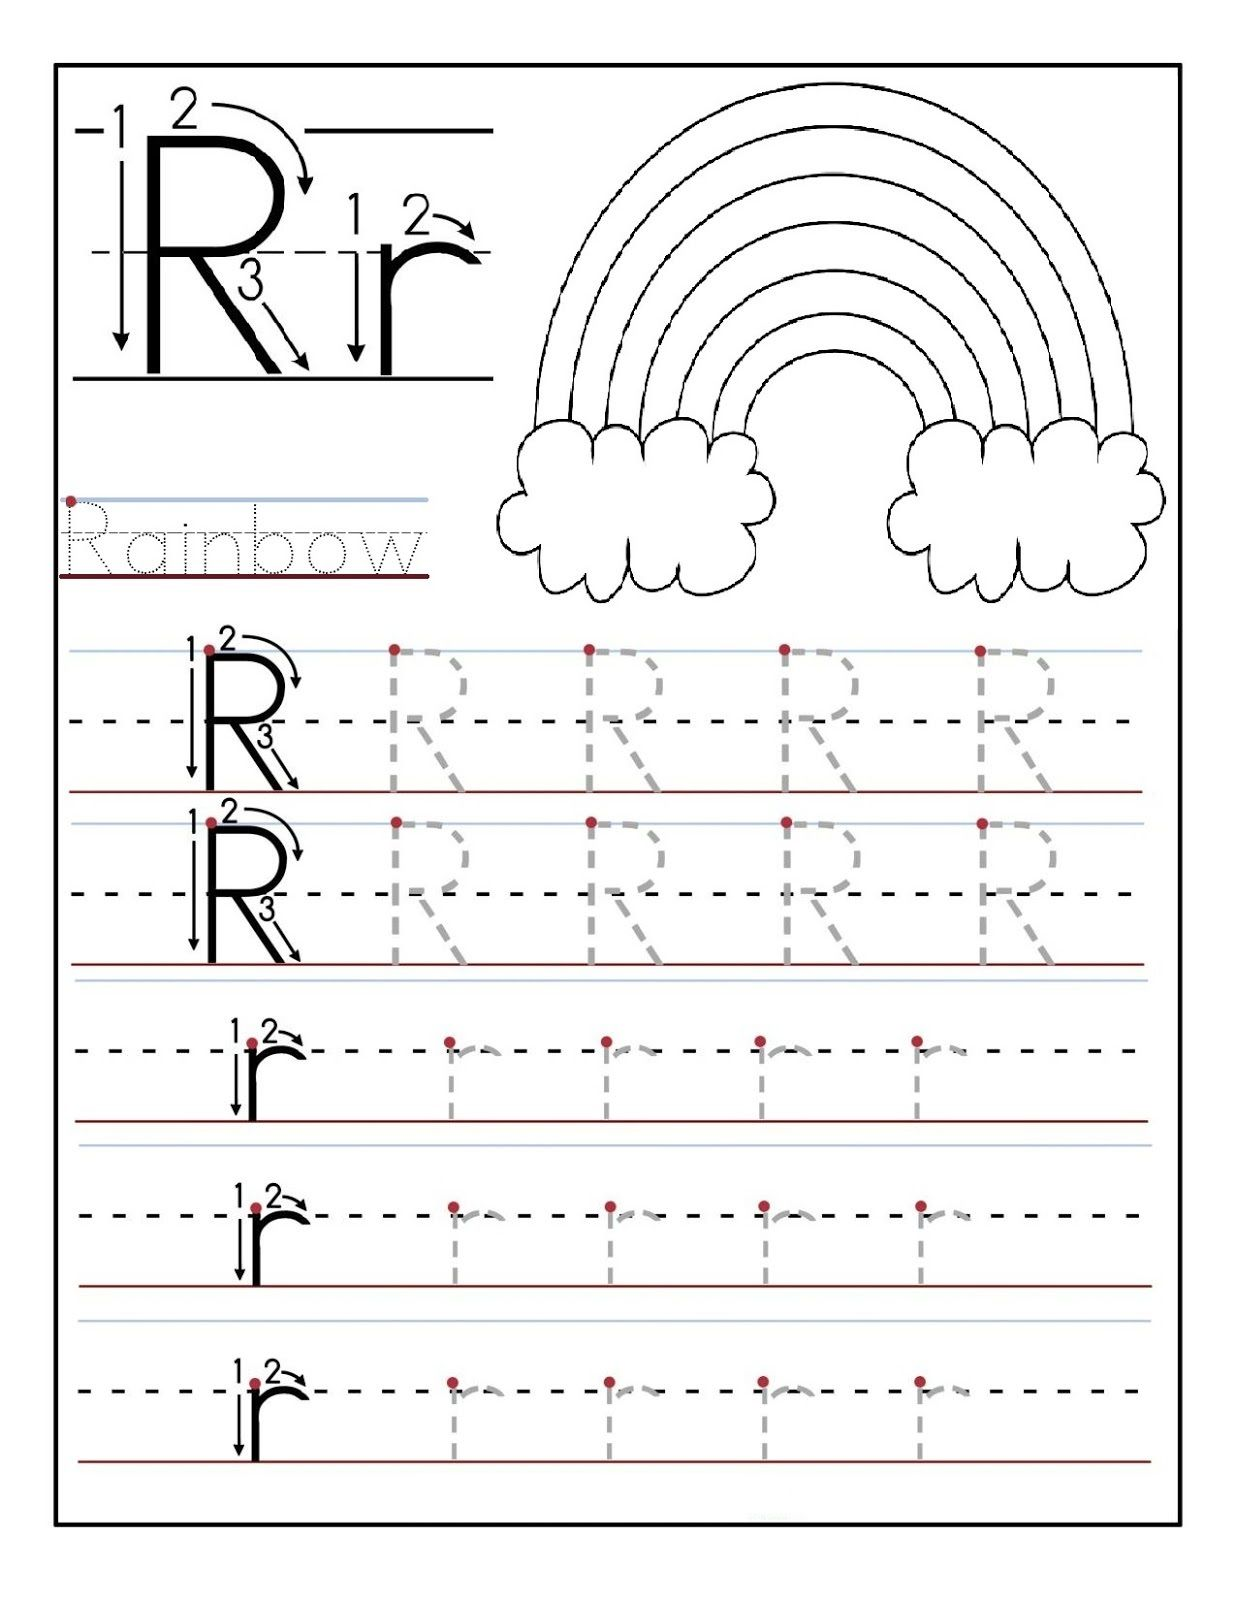 Tracing Letter R Activities For Toddlers K5 Worksheets Tracing Worksheets Preschool Kindergarten Worksheets Printable Alphabet Tracing Worksheets [ 1600 x 1236 Pixel ]